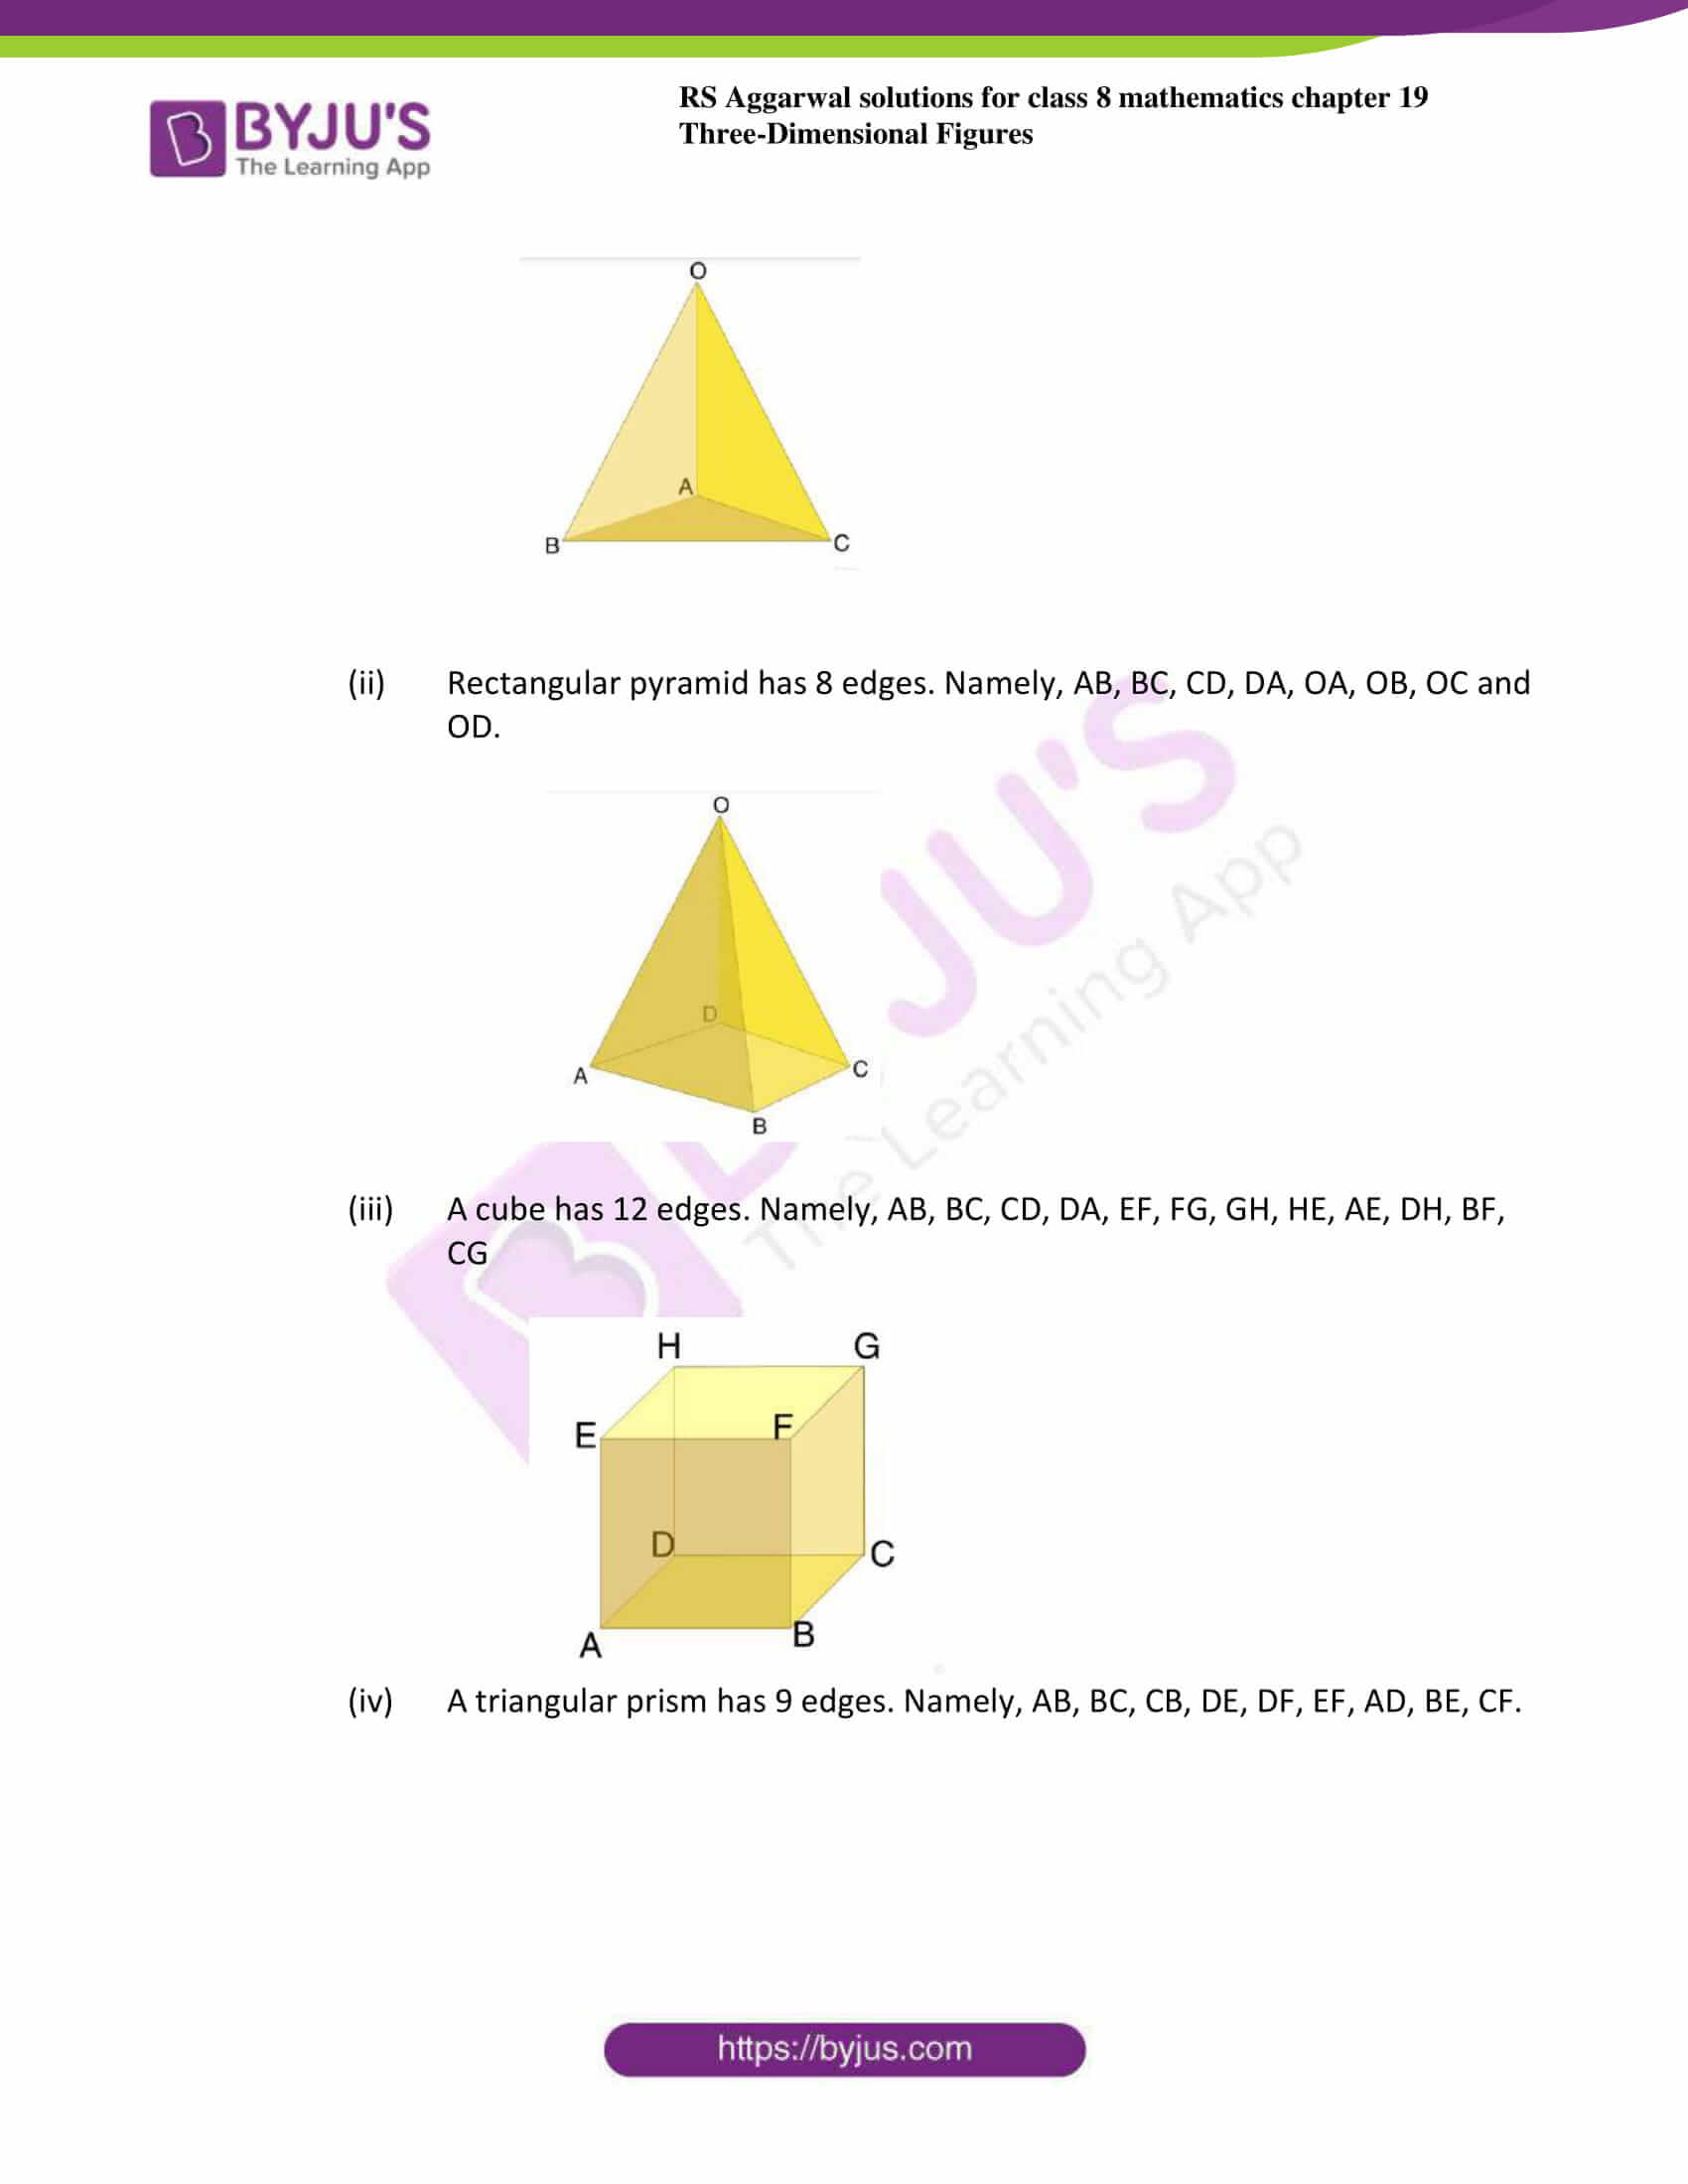 RS Aggarwal Solutions for Class 8 Chapter 19 - Three ...